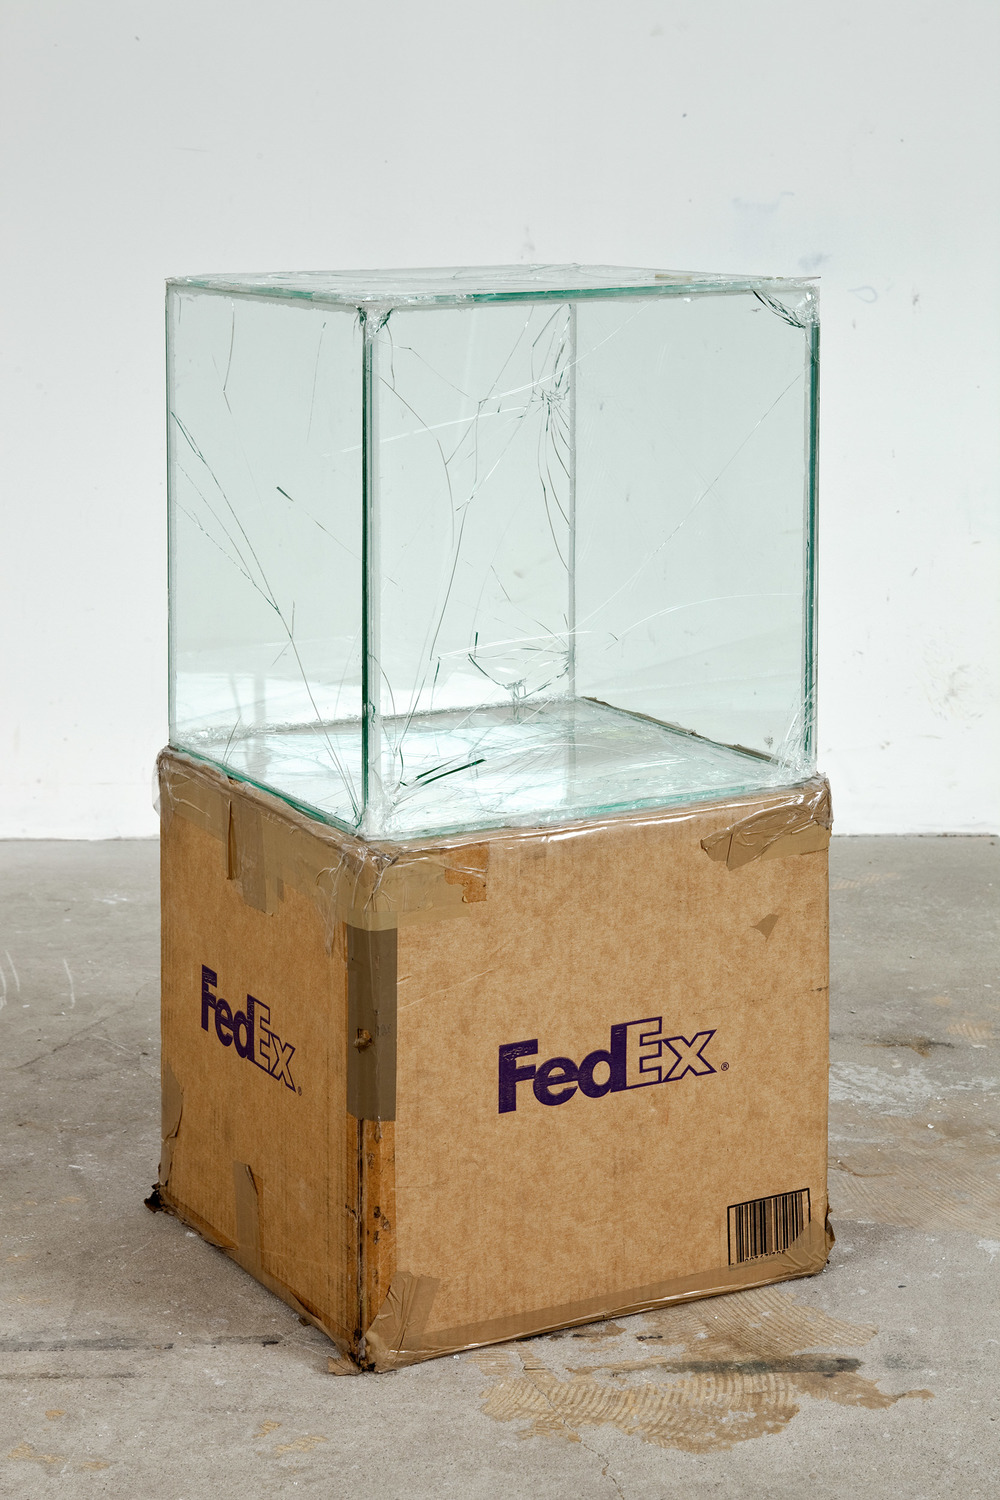 FedEx® Kraft Box  © 2005 FEDEX 330504 10/05 SSCC, Priority Overnight, Los Angeles-Miami trk#865344981299, October 29–30, 2008, Priority Overnight, Miami–Ann Arbor trk#861049125115, March 03–04, 2009, Standard Overnight, Ann Arbor–Los Angeles trk#868274625749, July 09–10, 2009, Standard Overnight, Los Angeles–San Francisco trk#878069766471, August 27–28, 2009, Standard Overnight, San Francisco–Los Angeles trk#870342520145, November 12–13, 2009, International Priority, Los Angeles–London trk#798269222978, April 10–12, 2012    2008–   Laminated glass, FedEx shipping box, accrued FedEx shipping and tracking labels, silicone, metal, tape  16 x 16 x 16 inches   FedEx Glass Works, 2007–